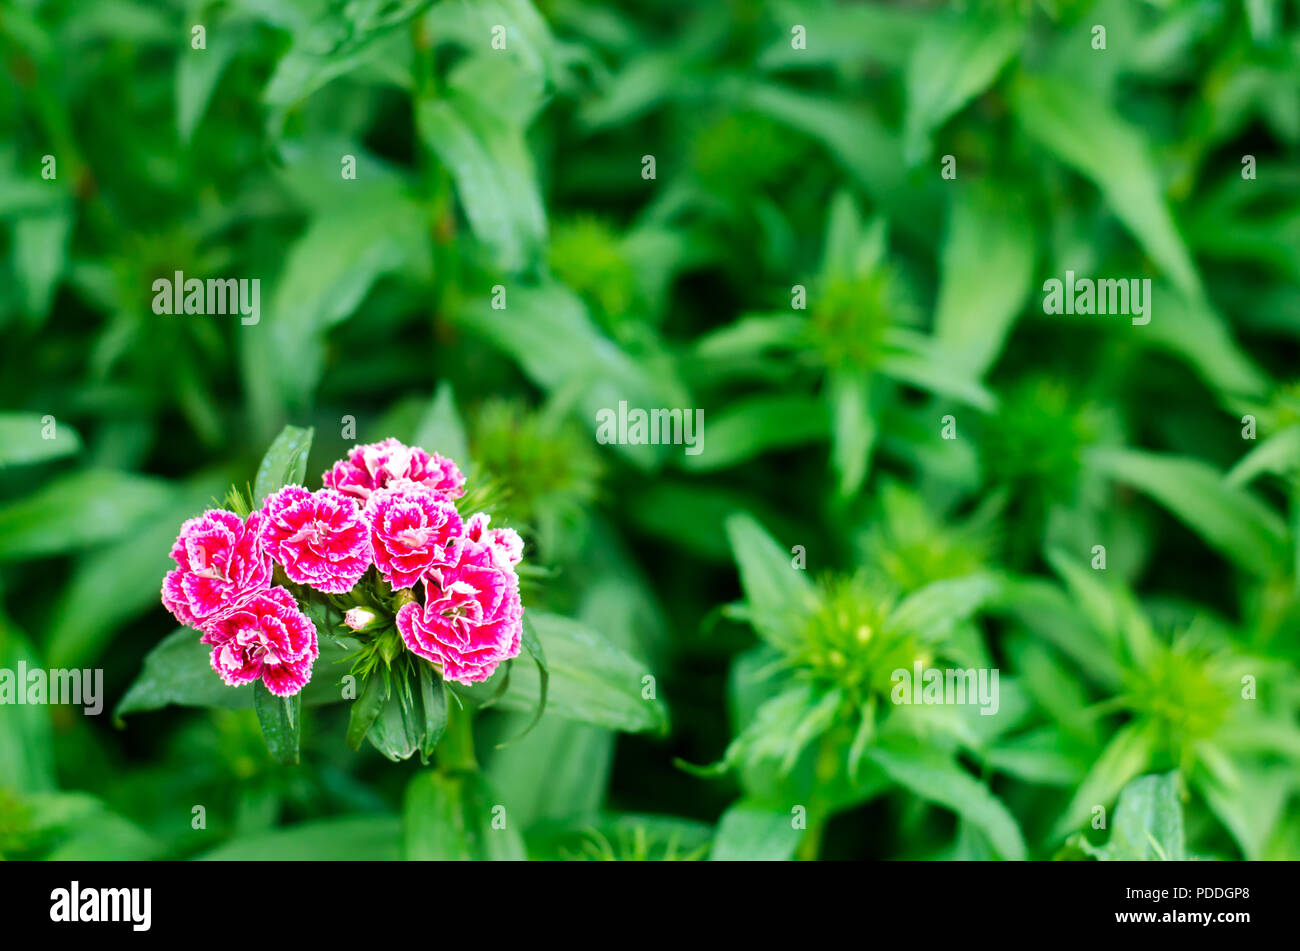 Cloves turkish dianthus barbatus garden plants flower perennial dianthus barbatus garden plants flower perennial close up horizontal photo natural wallpaper background for design place for t mightylinksfo